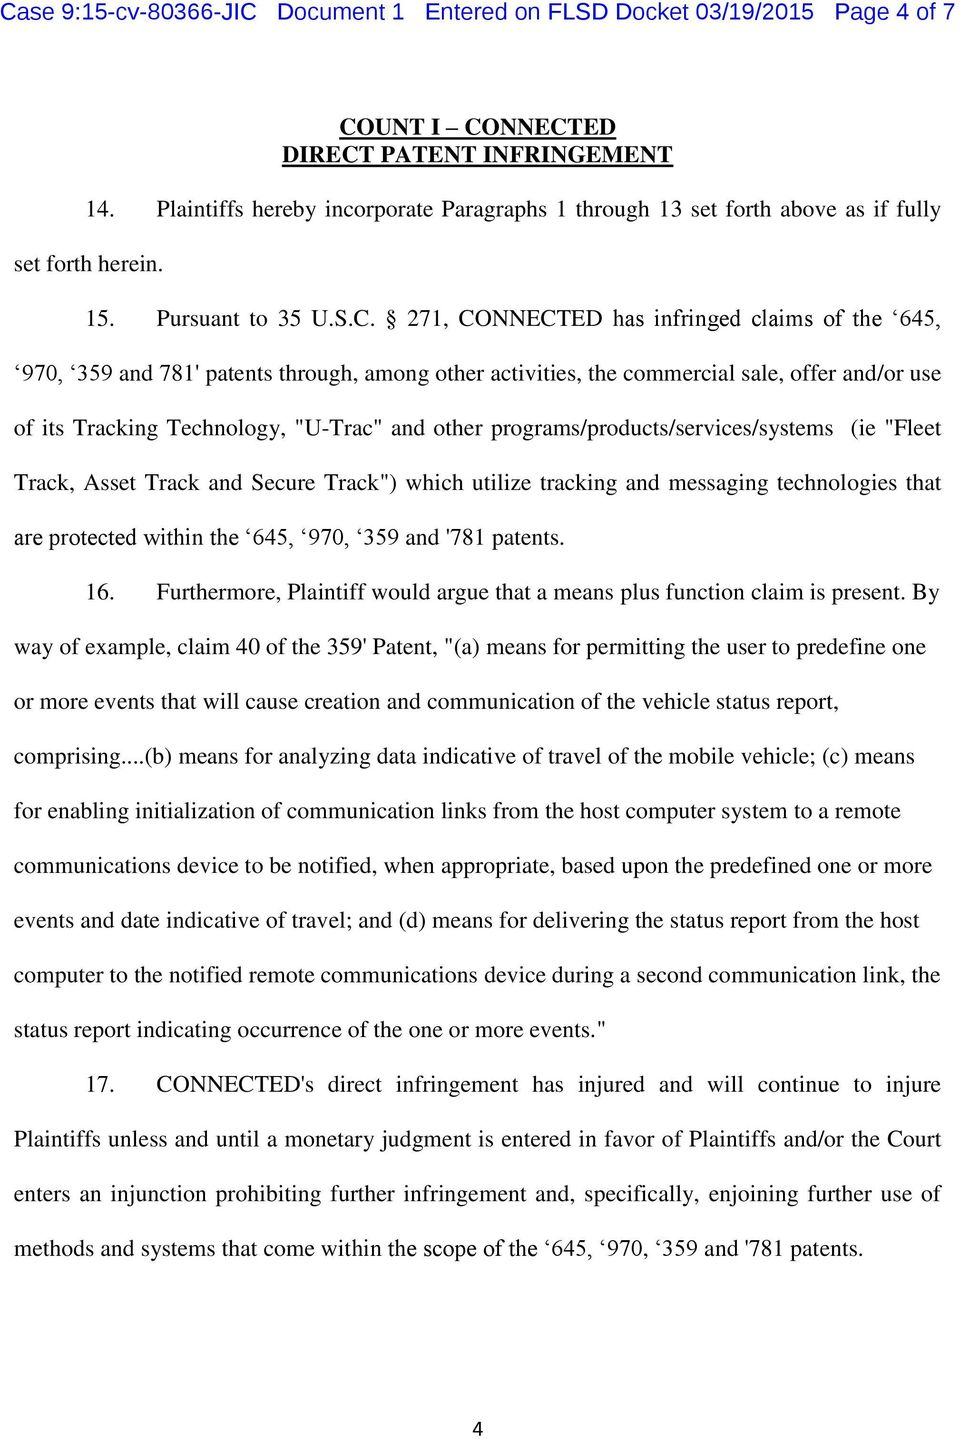 "271, CONNECTED has infringed claims of the 645, 970, 359 and 781' patents through, among other activities, the commercial sale, offer and/or use of its Tracking Technology, ""U-Trac"" and other"